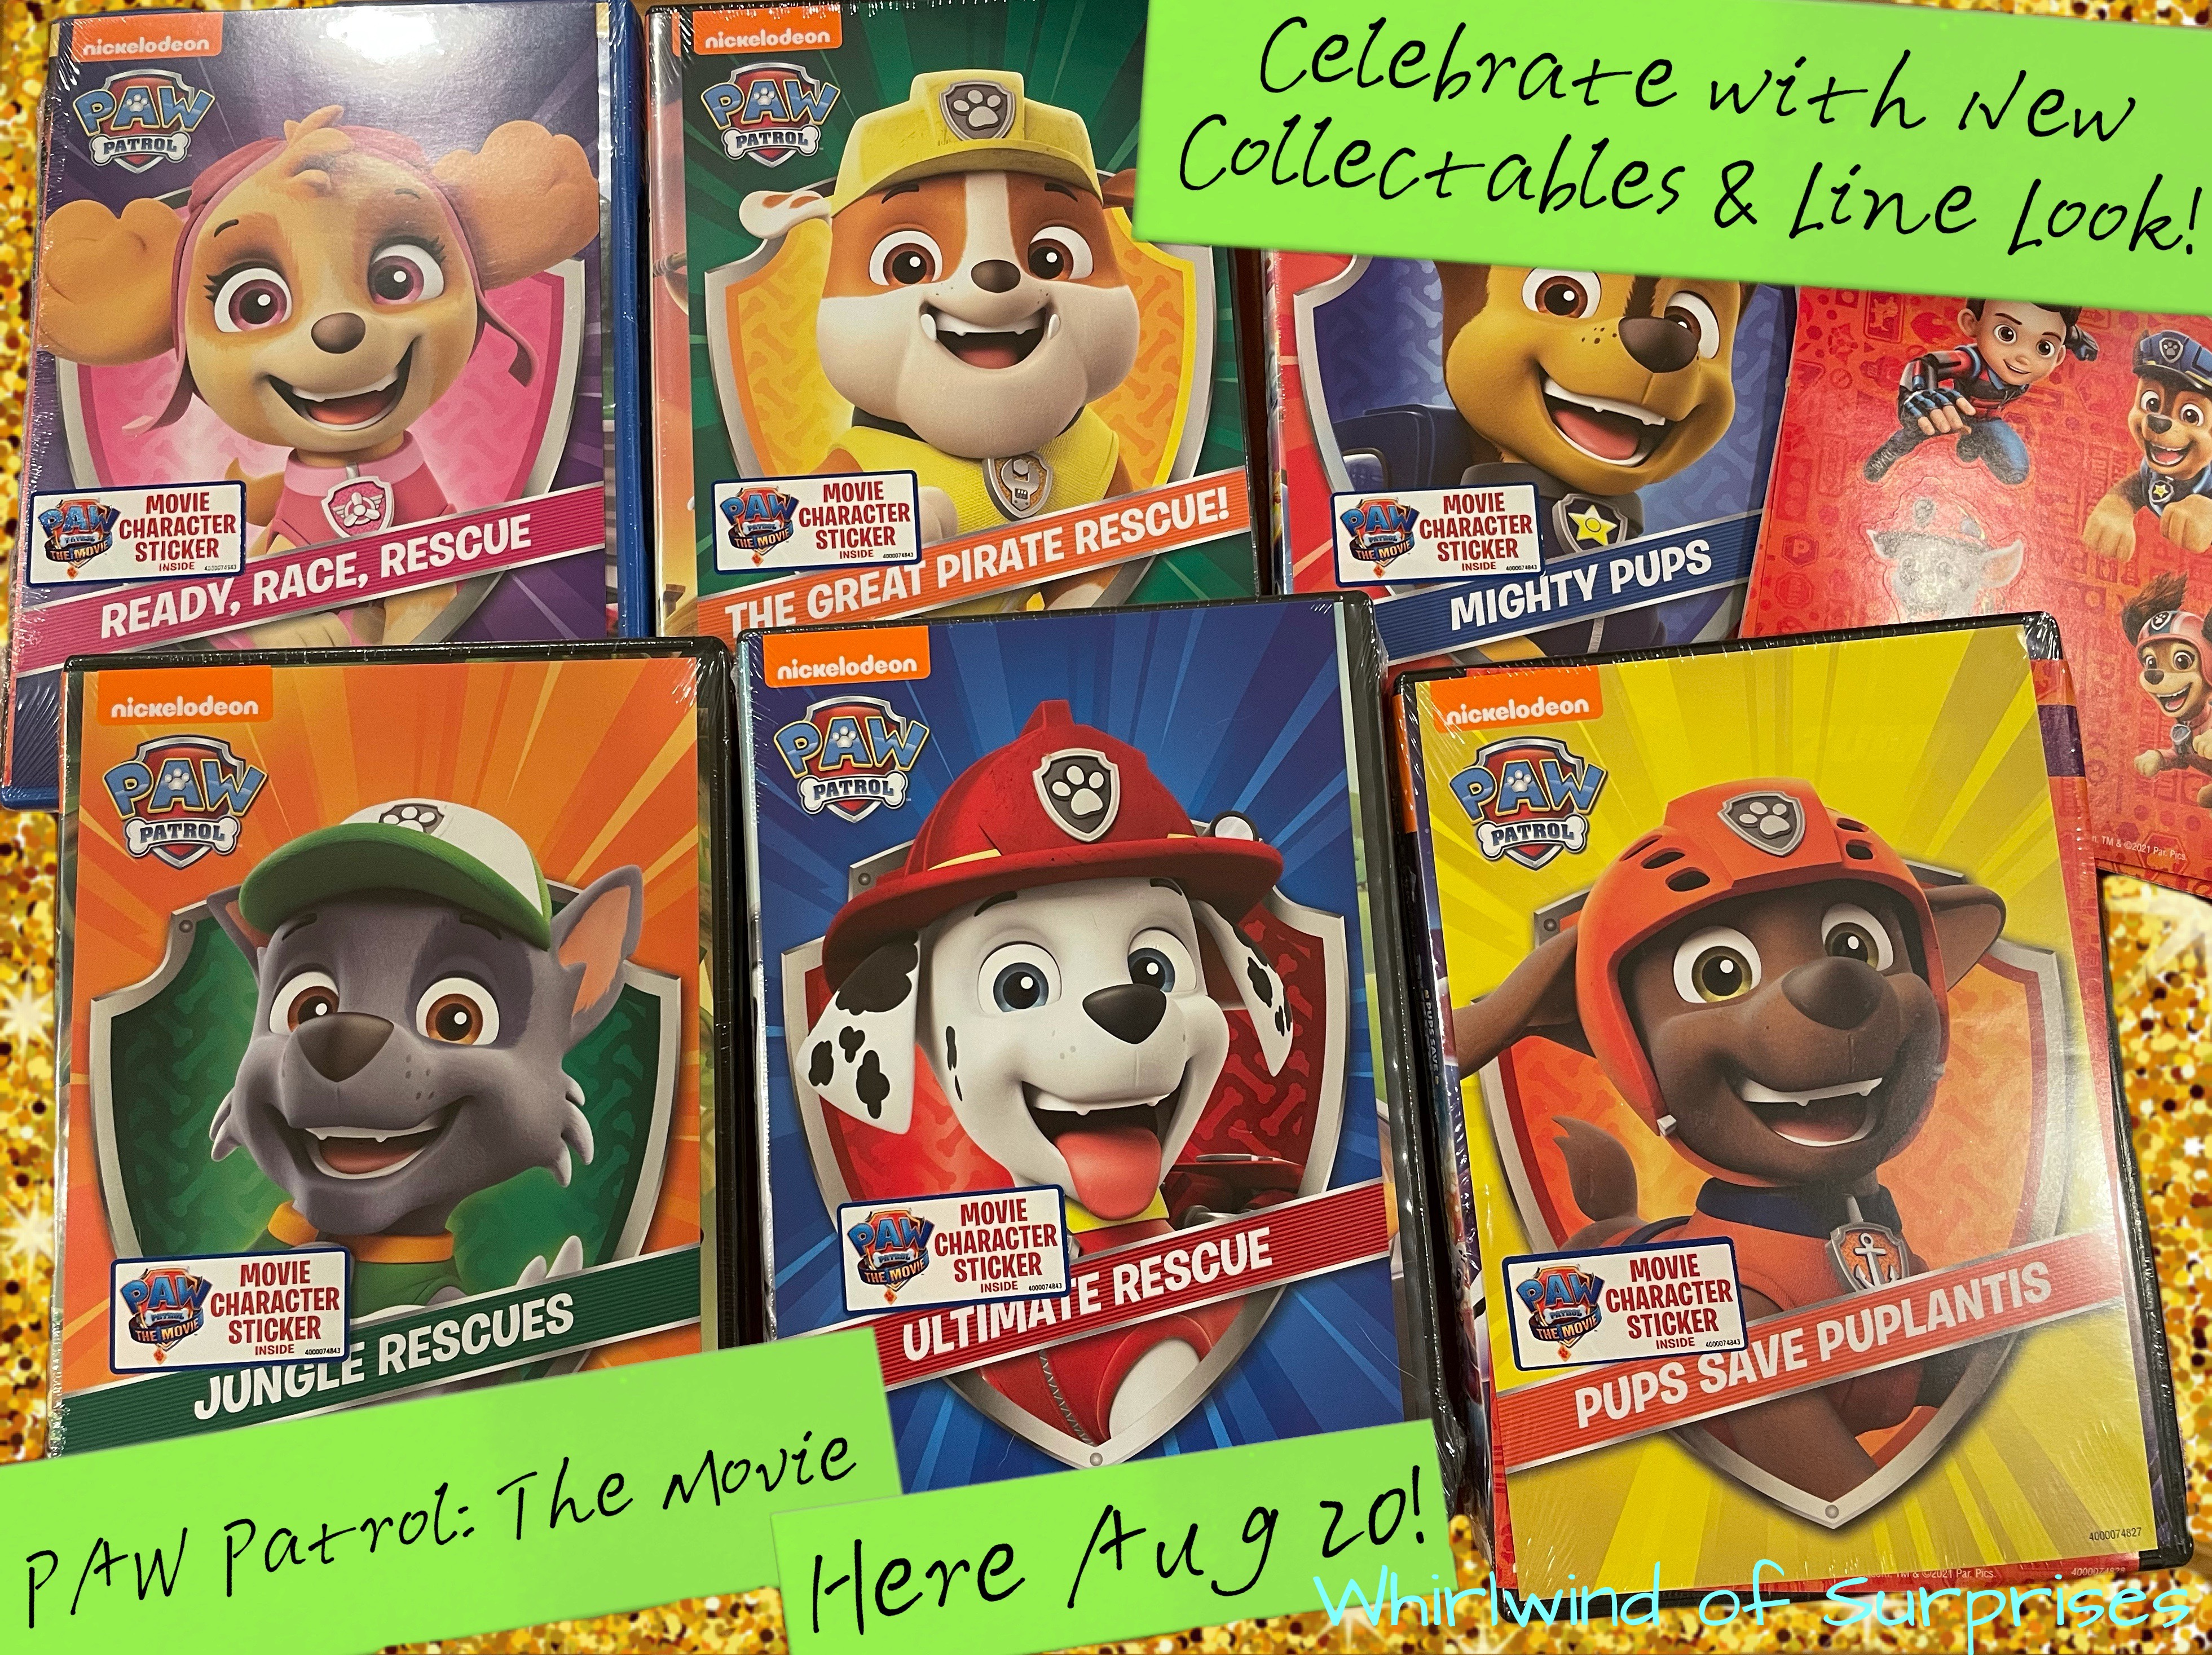 PAW Patrol: The Movie Line Look and Collectibles